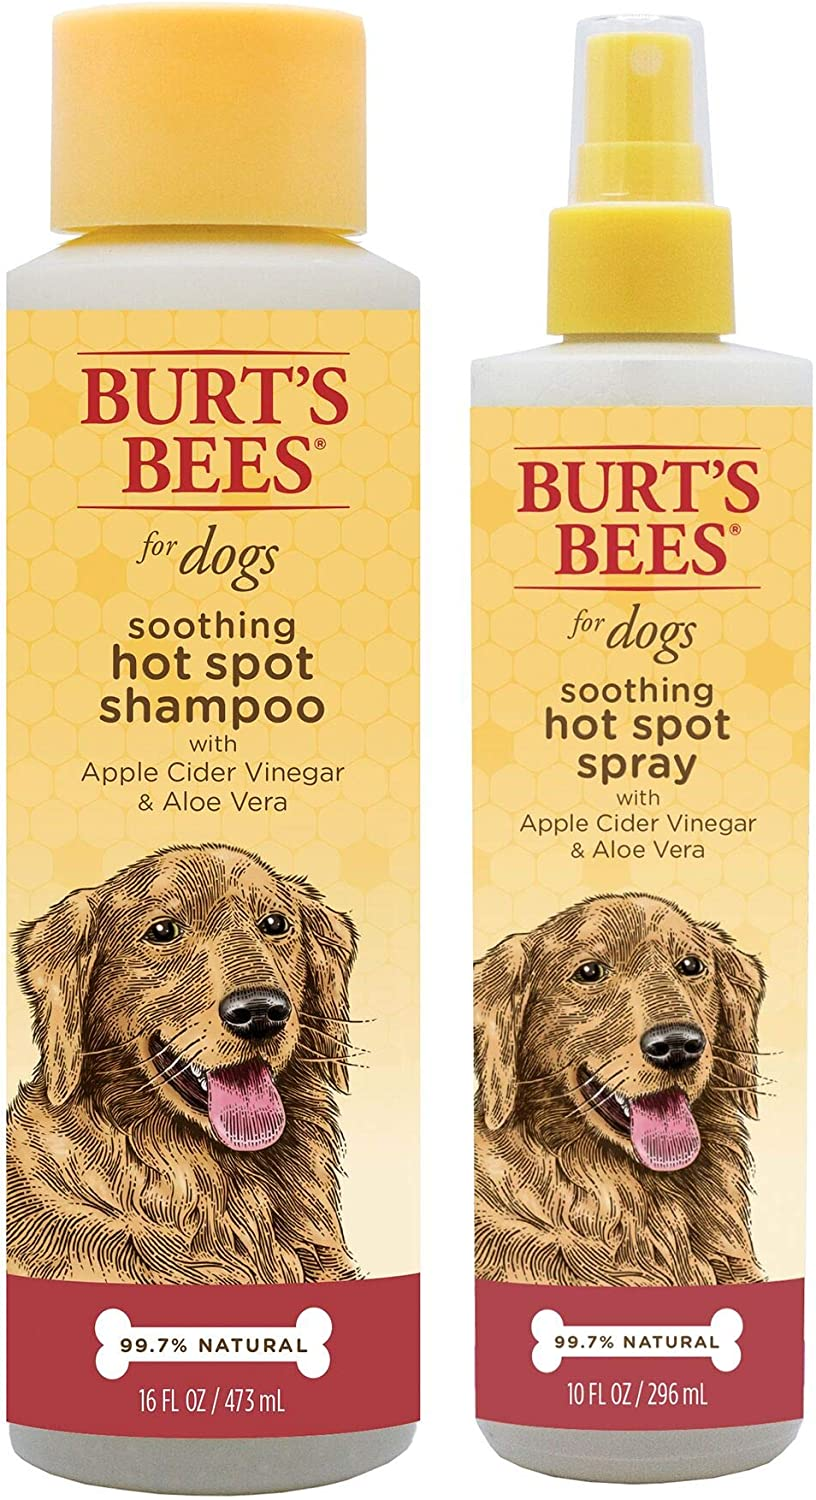 Combo Pack: Burt's Bees for Dogs Soothing Hot Spot Shampoo and Spray with Apple Cider Vinegar | Cruelty Free, Sulfate & Paraben Free, pH Balanced for Dogs - Made in The USA